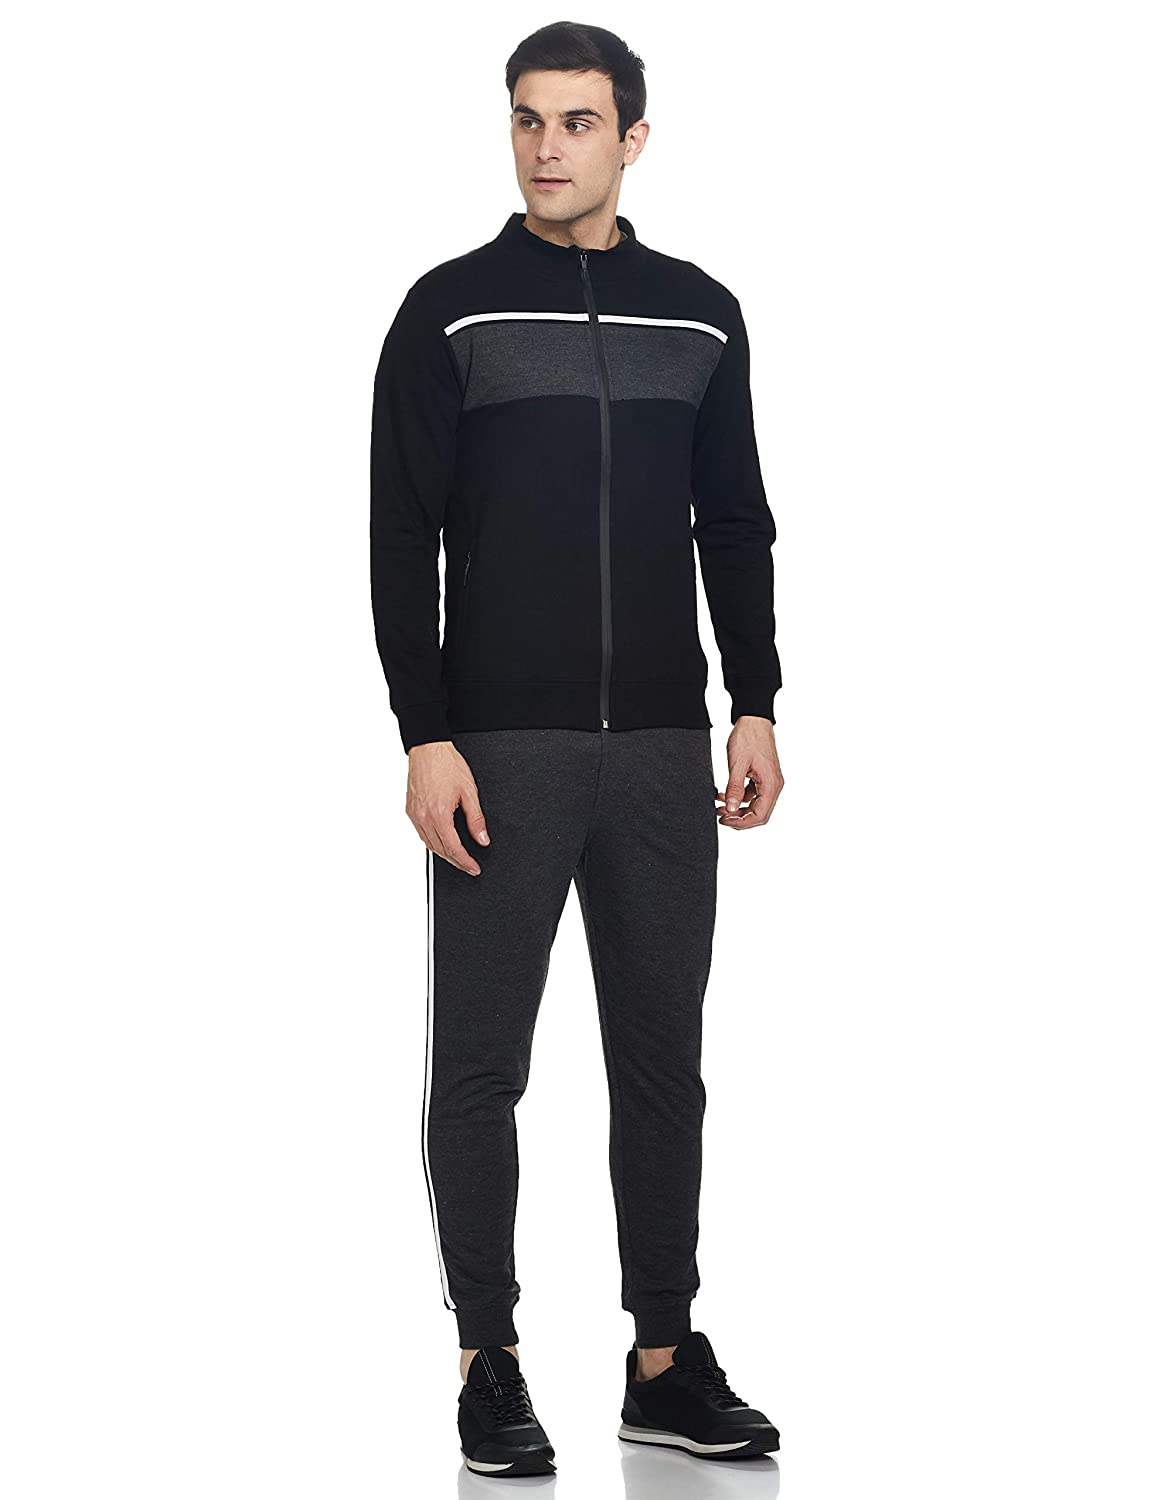 [Apply coupon] Integriti mens TRACK SUIT